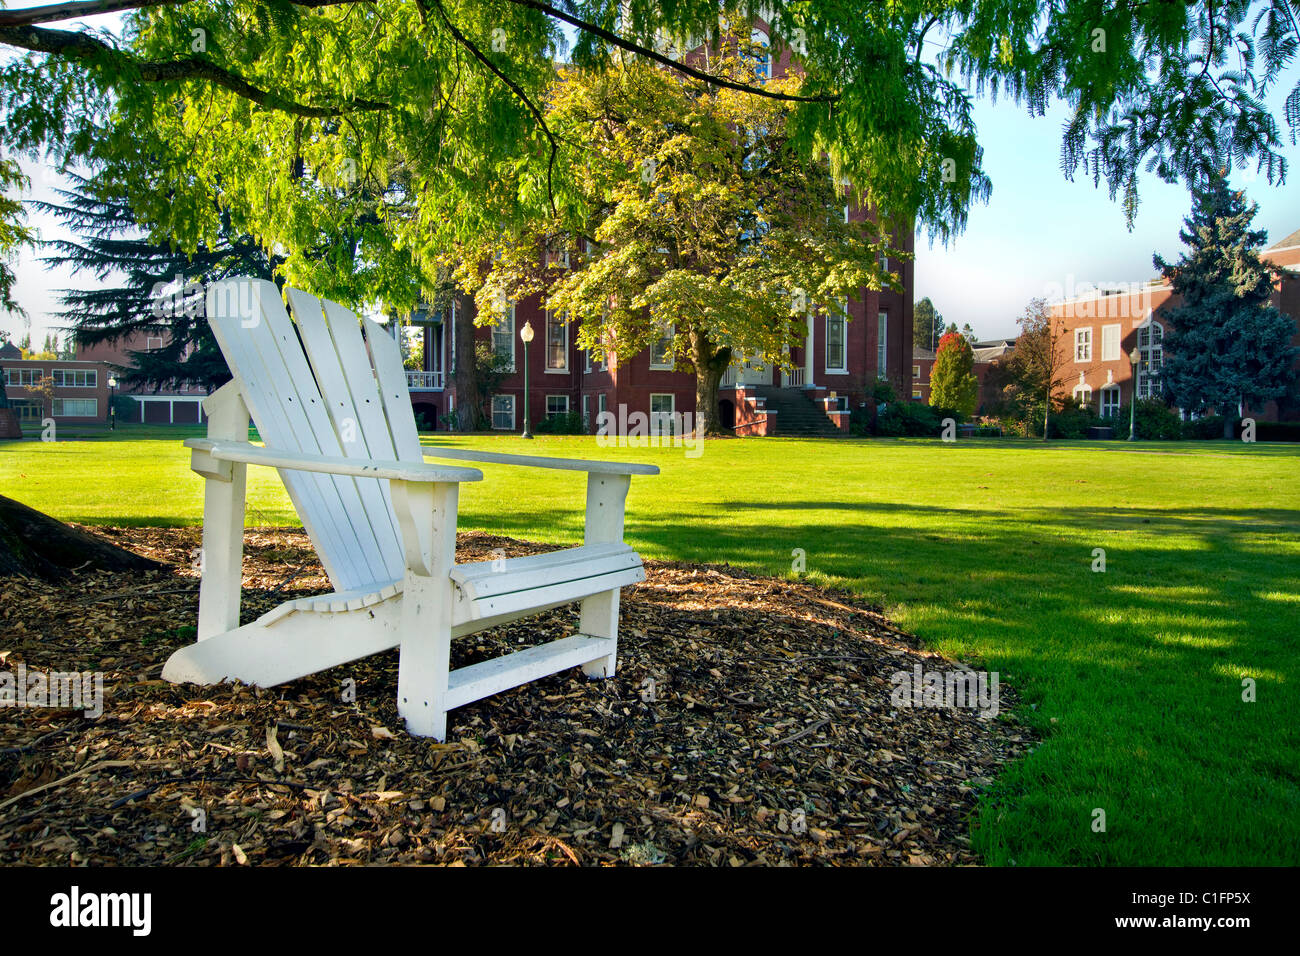 Wooden Deck Chair Under the Tree in Public Parks - Stock Image